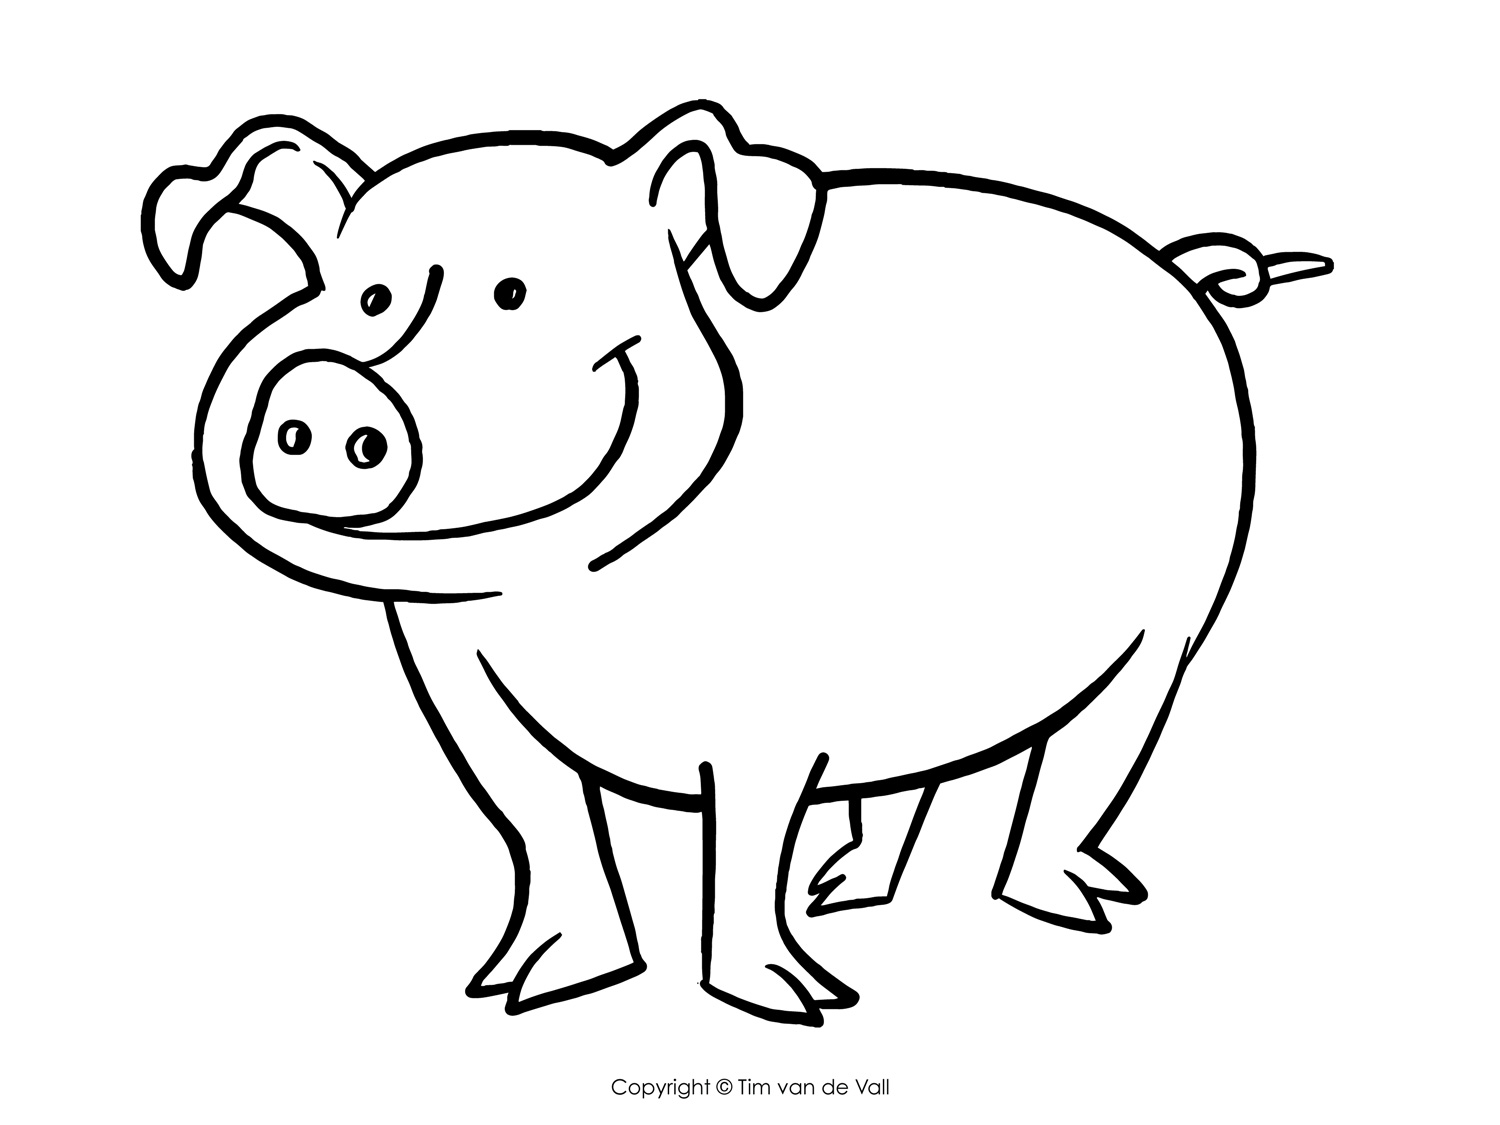 1500x1125 Three Little Pigs Coloring Pages The Three Little Pigs Story